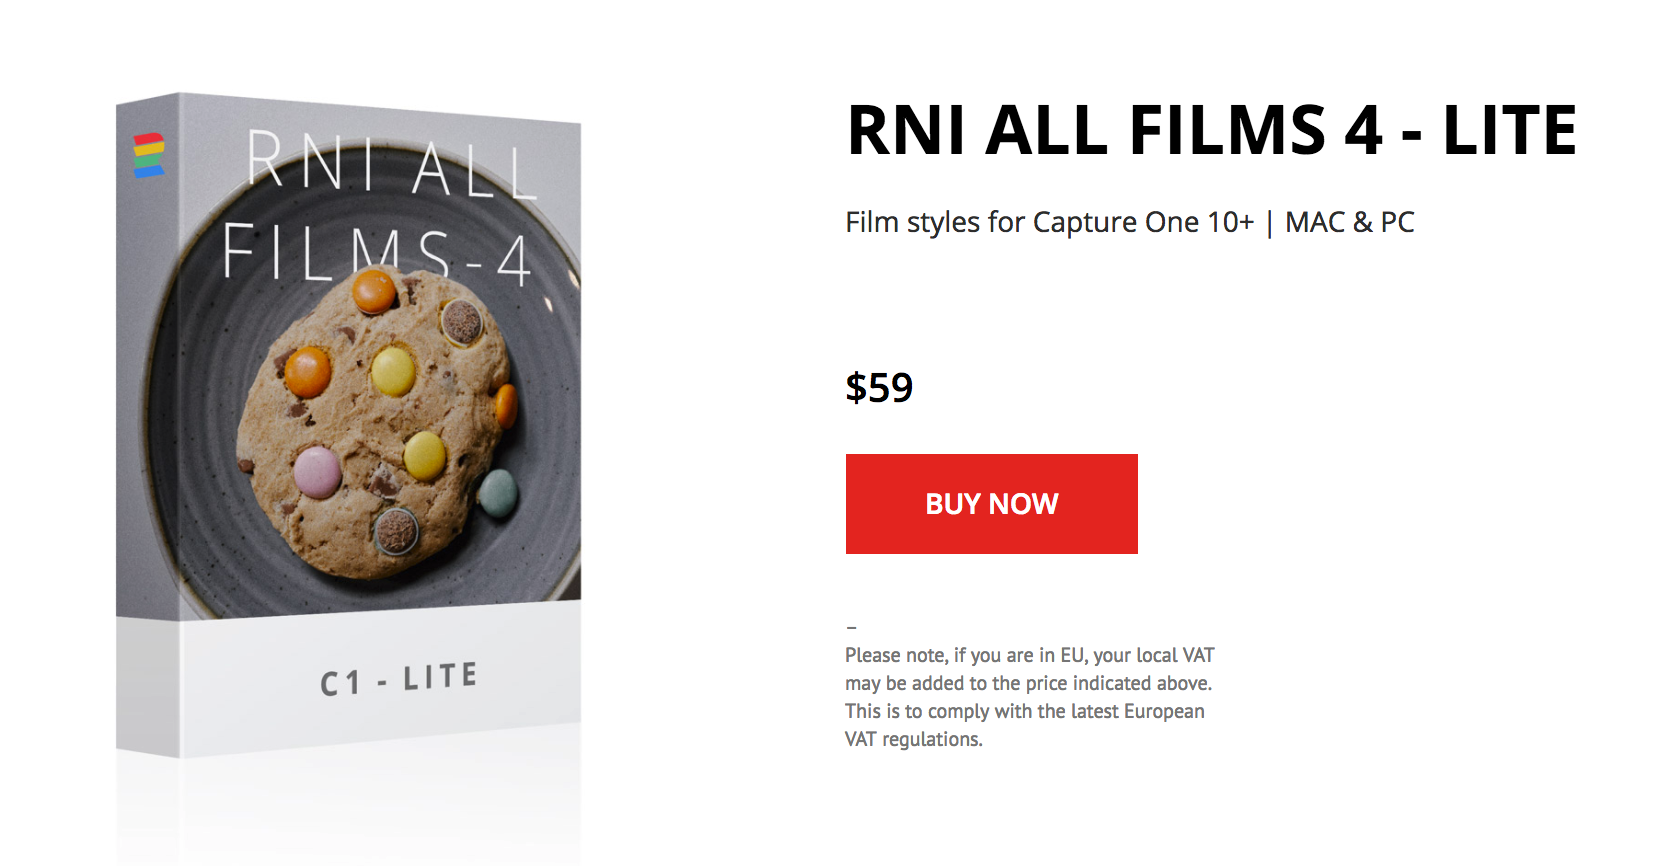 Rejoice! RNI All Films 4 Lite Finally Comes to Capture One